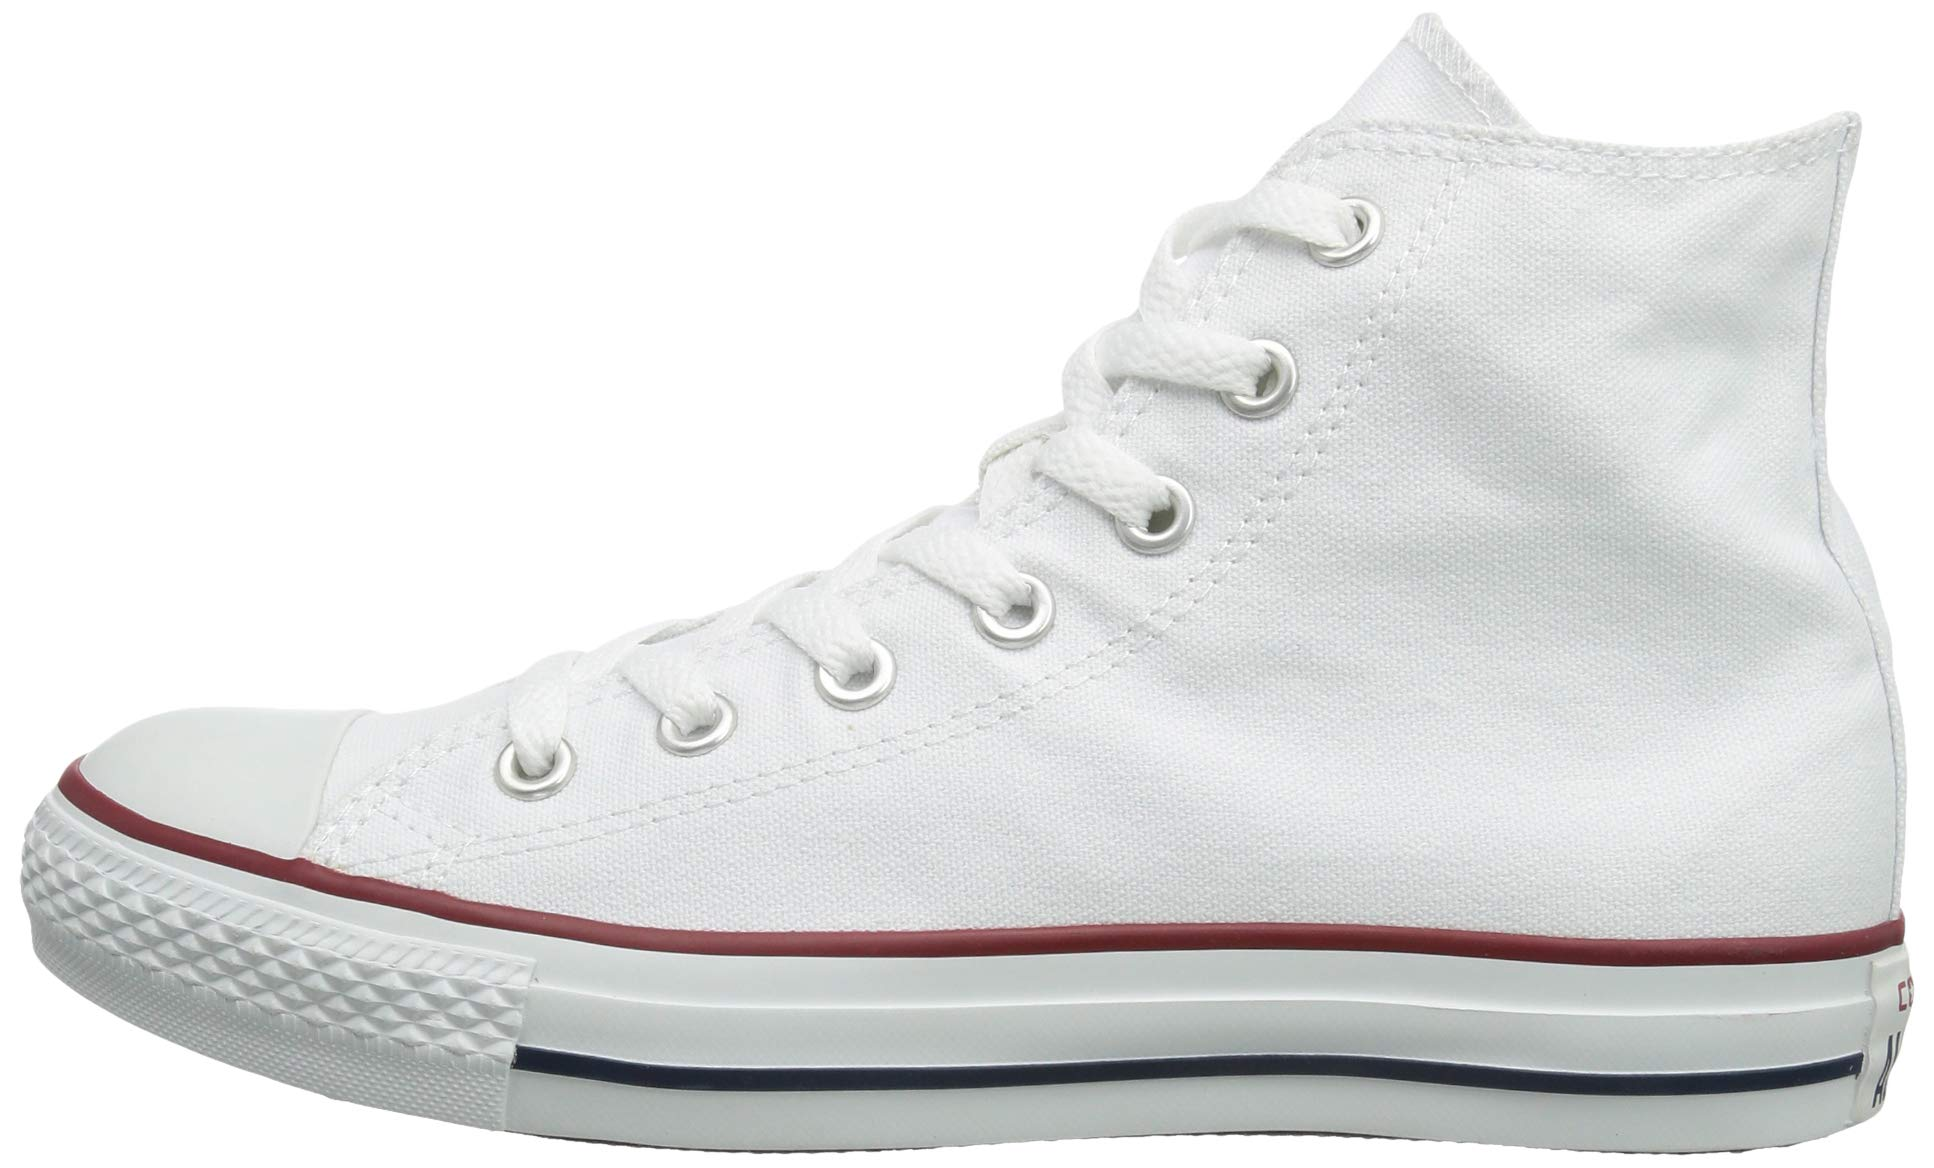 Chuck Taylor All Star Canvas High Top, Optical White, 3 M US by Converse (Image #5)